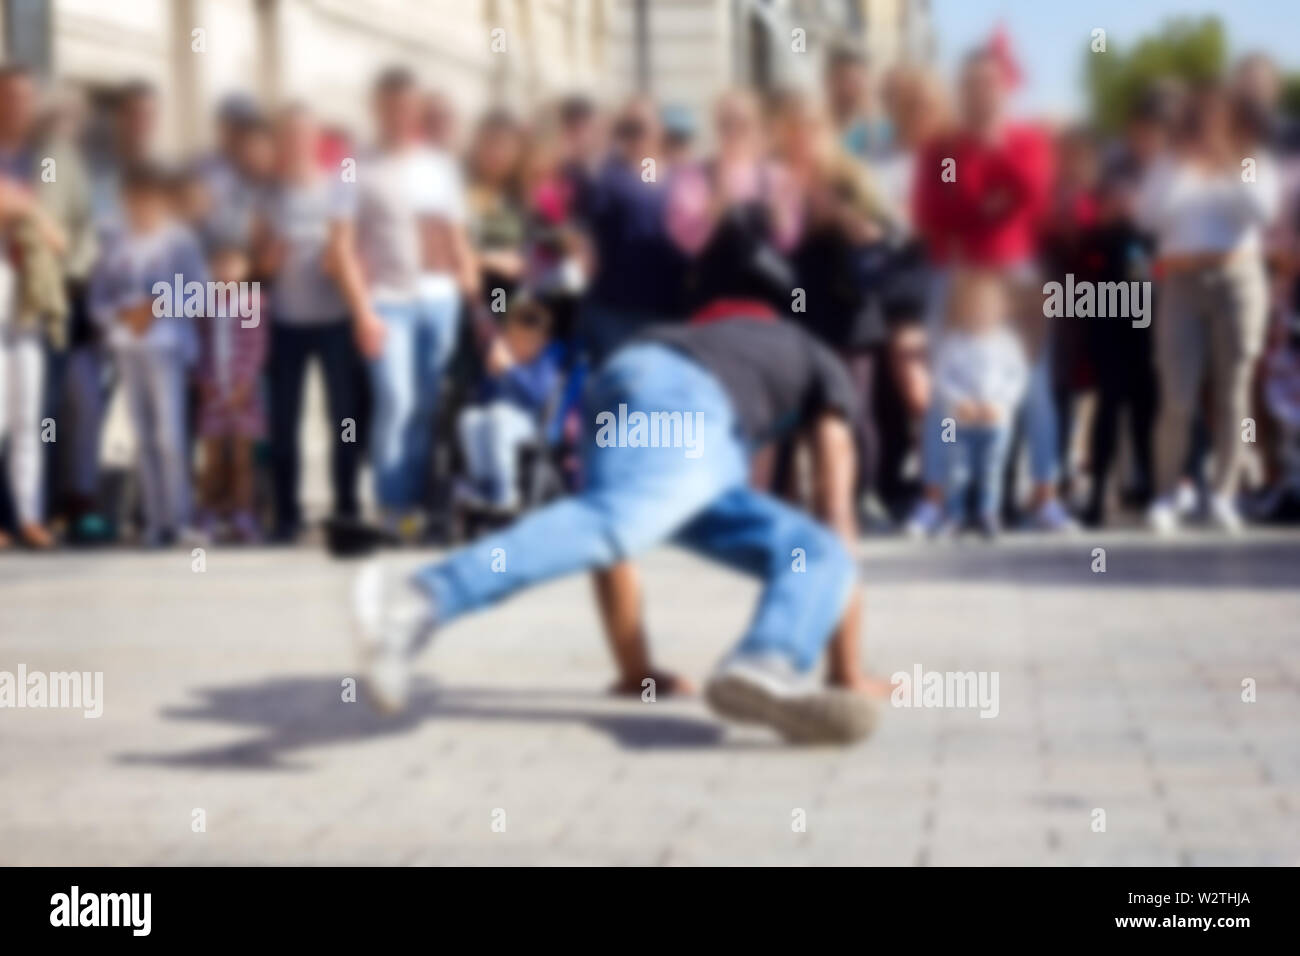 Strong blur, anonymous people on the streets of Europe. Street break dance show - Stock Image